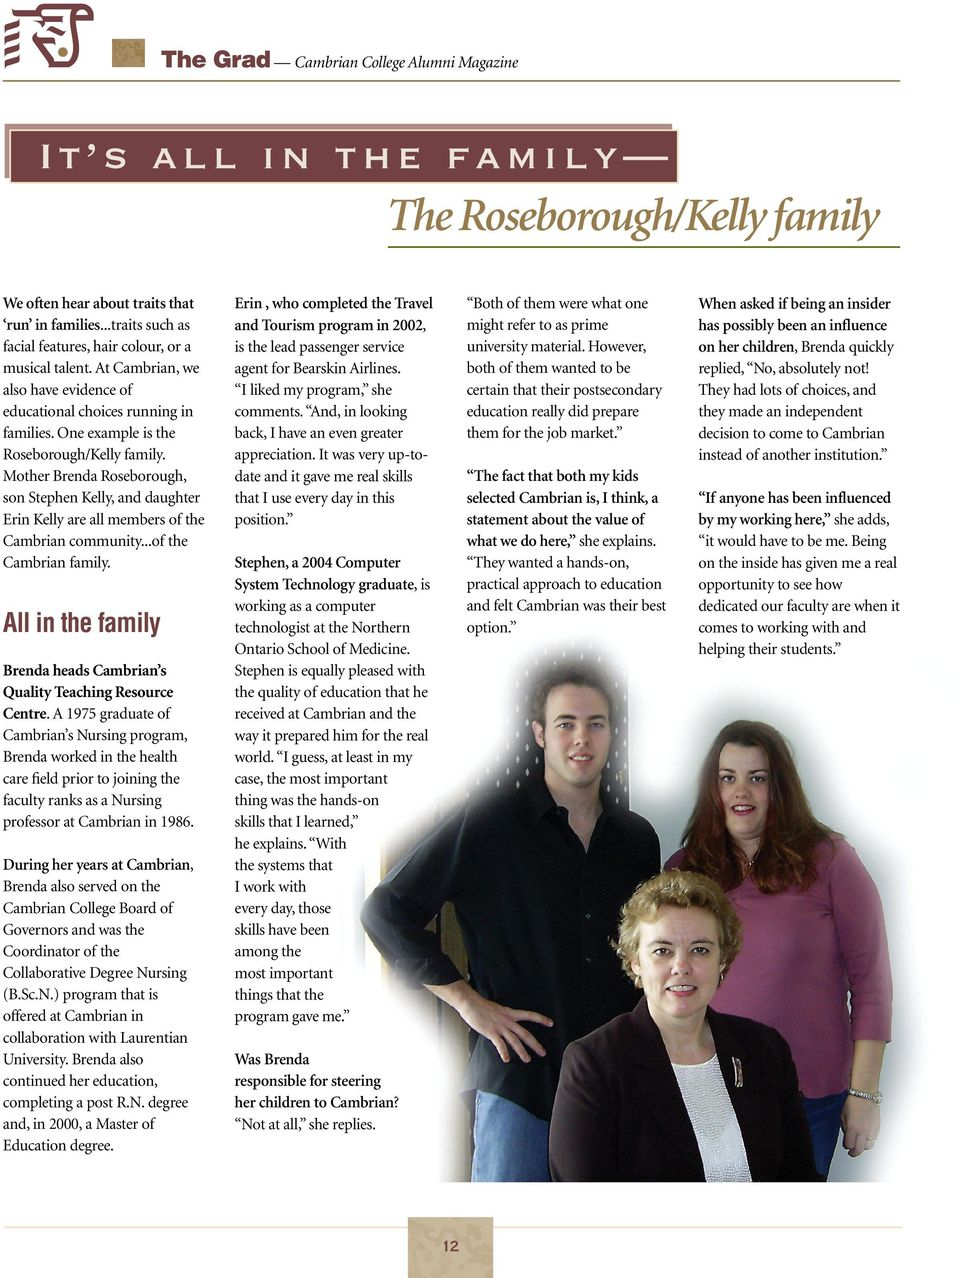 Mother Brenda Roseborough, son Stephen Kelly, and daughter Erin Kelly are all members of the Cambrian community...of the Cambrian family.